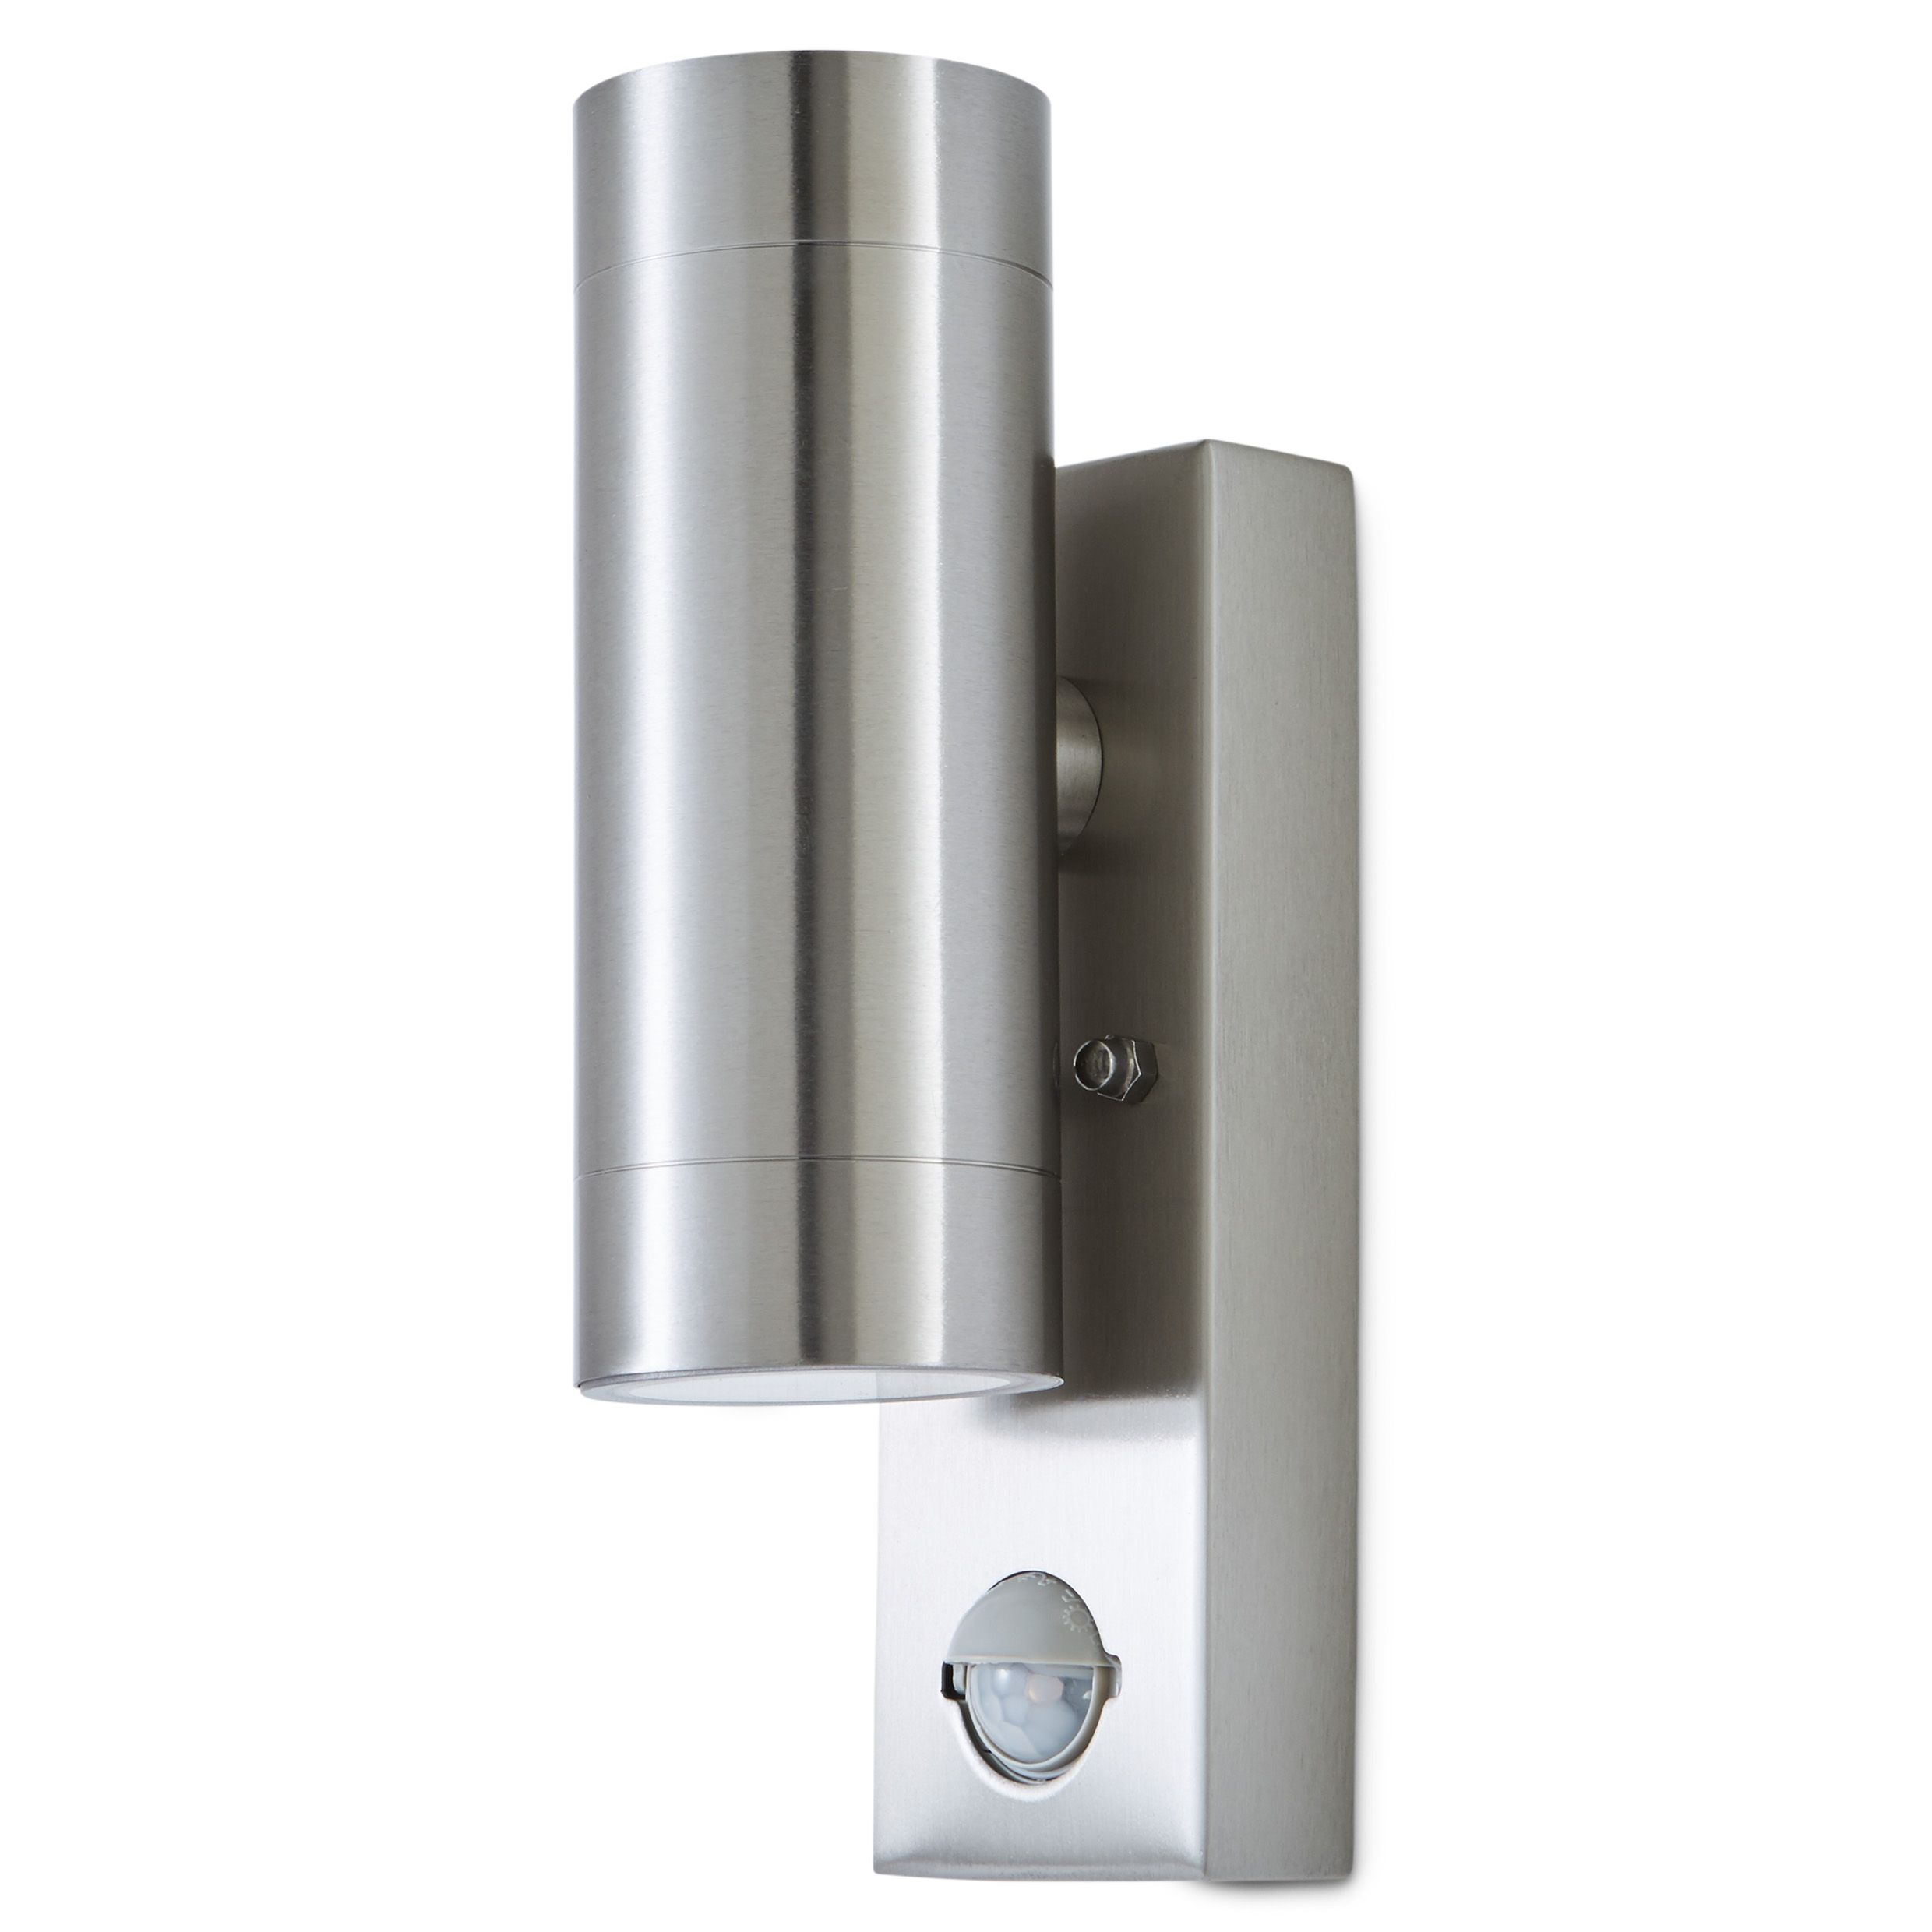 Patio Lights Screwfix: Blooma Candiac Silver Effect Mains Powered Outdoor Wall